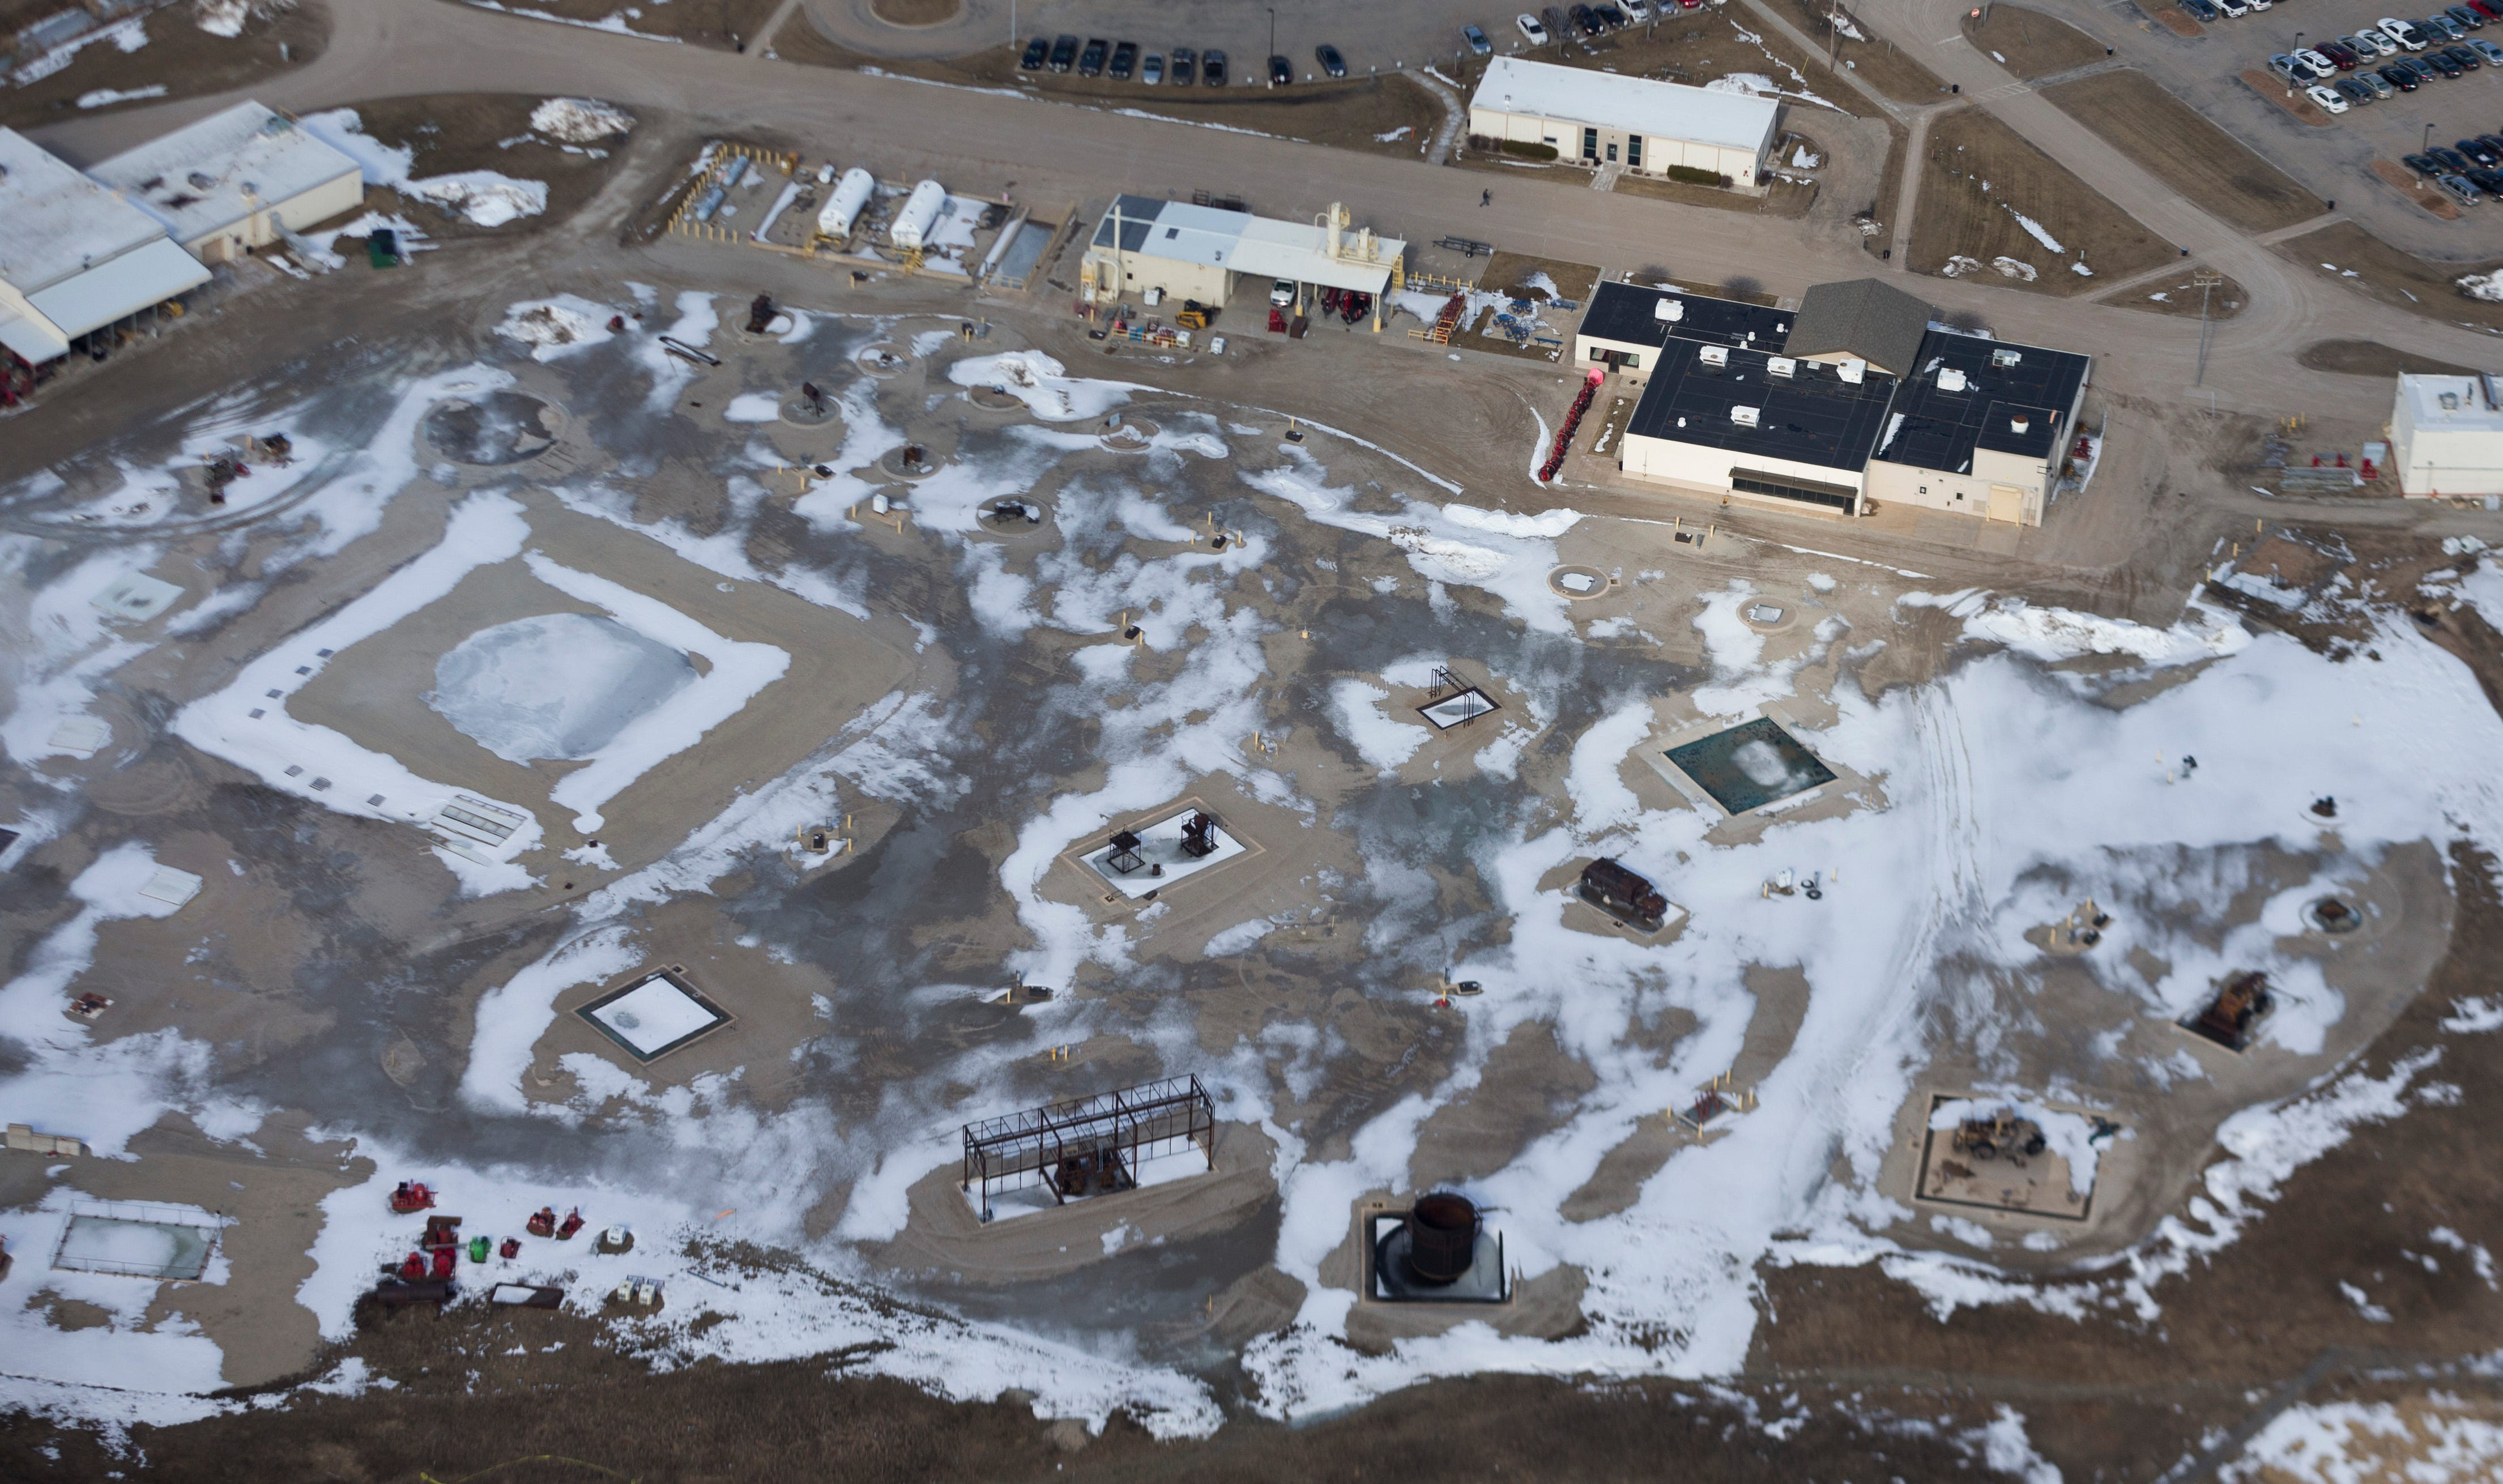 Firefighting foam used by unit of Johnson Controls poses toxic threat to Green Bay   Milwaukee Journal Sentinel